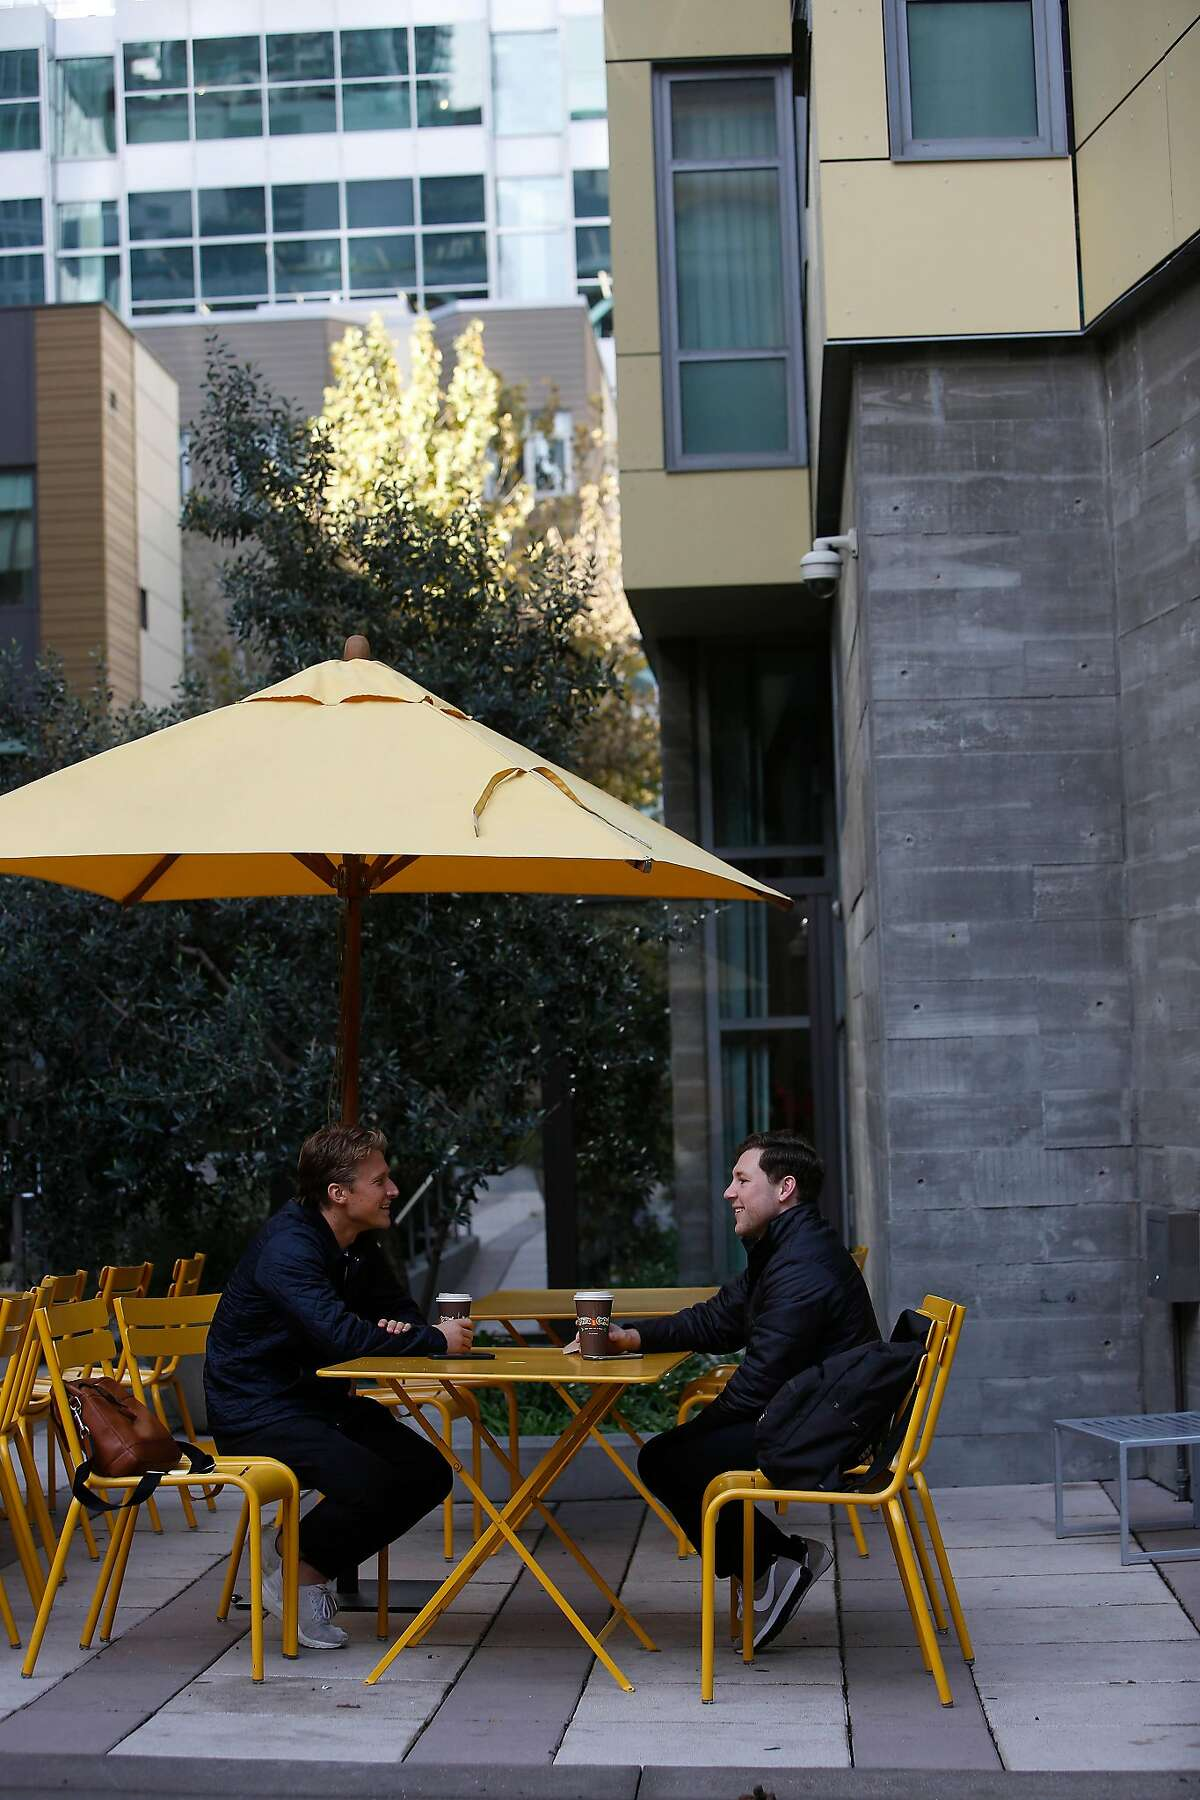 Emmett Mountjoy (l to r) and Travis Salle, both of San Francisco talk at a table while enjoying a beverage outside Philz Coffee along Folsom Street on Friday, January 17, 2020 in San Francisco, Calif.